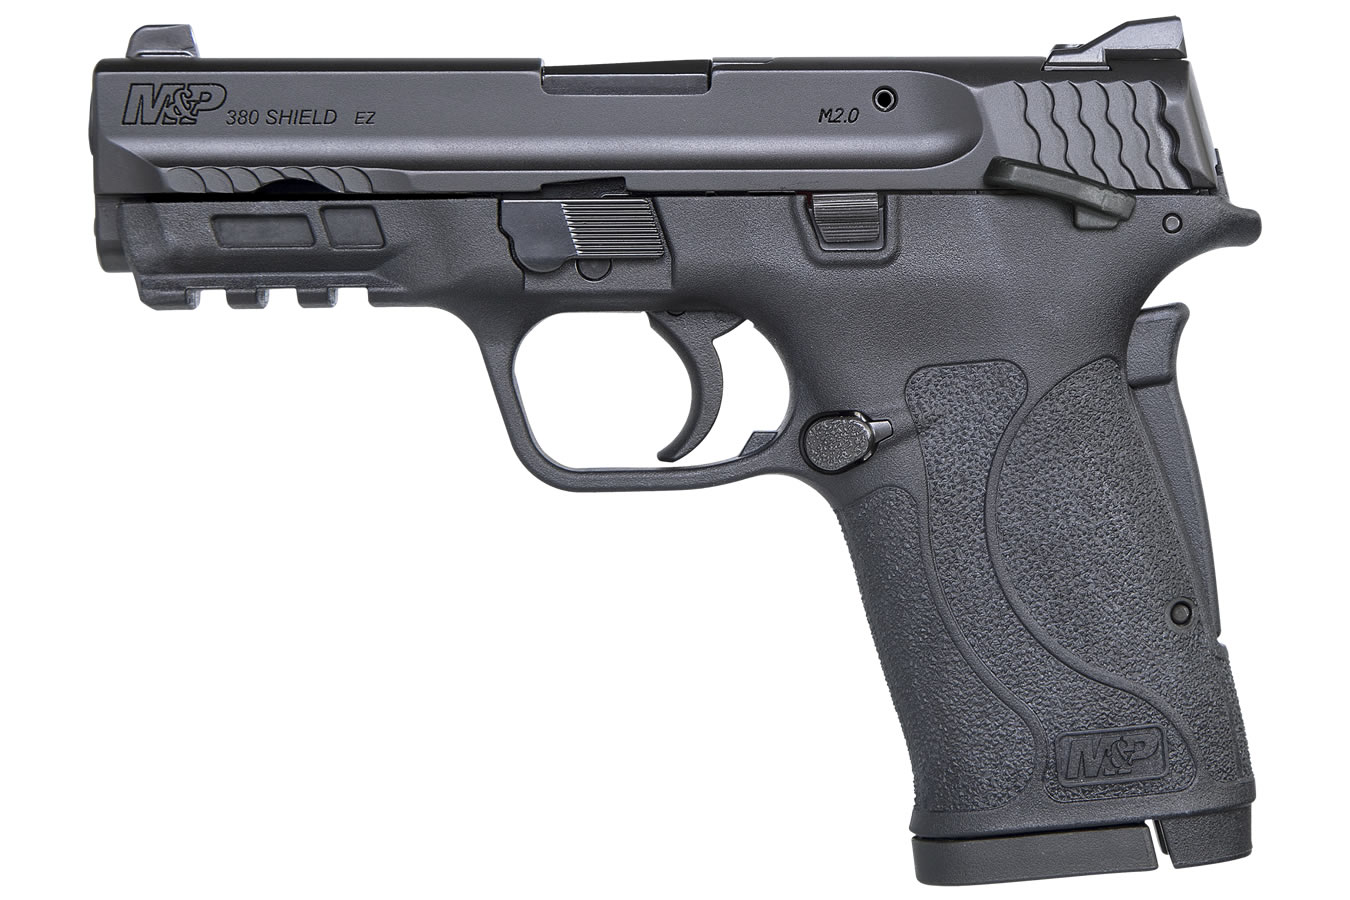 M&P380 Shield EZ 380 ACP Pistol with Thumb Safety